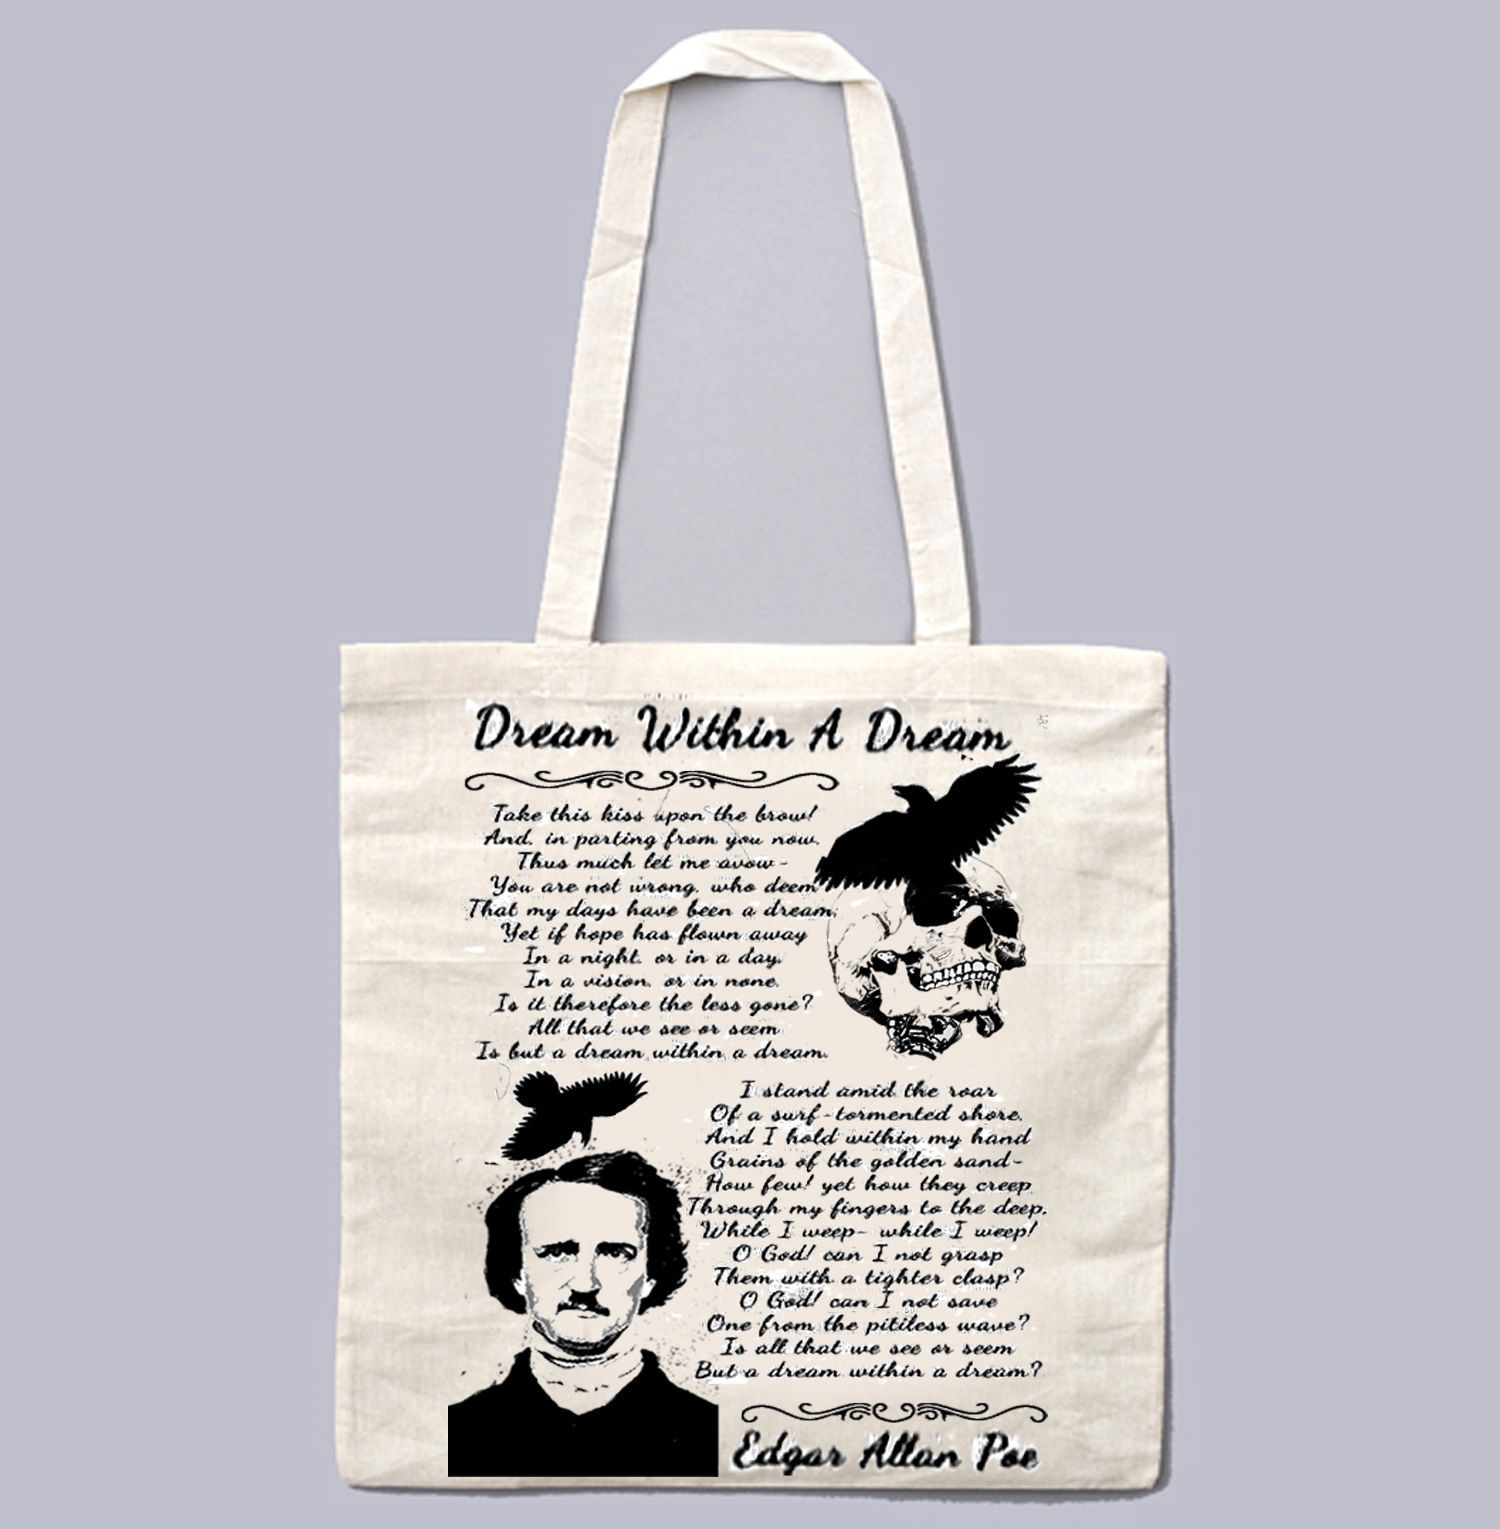 EDGAR ALAN POE DREAM WITHIN A DREAM- NEW AMAZING GRAPHIC WHITE HAND BAG/TOTE BAG